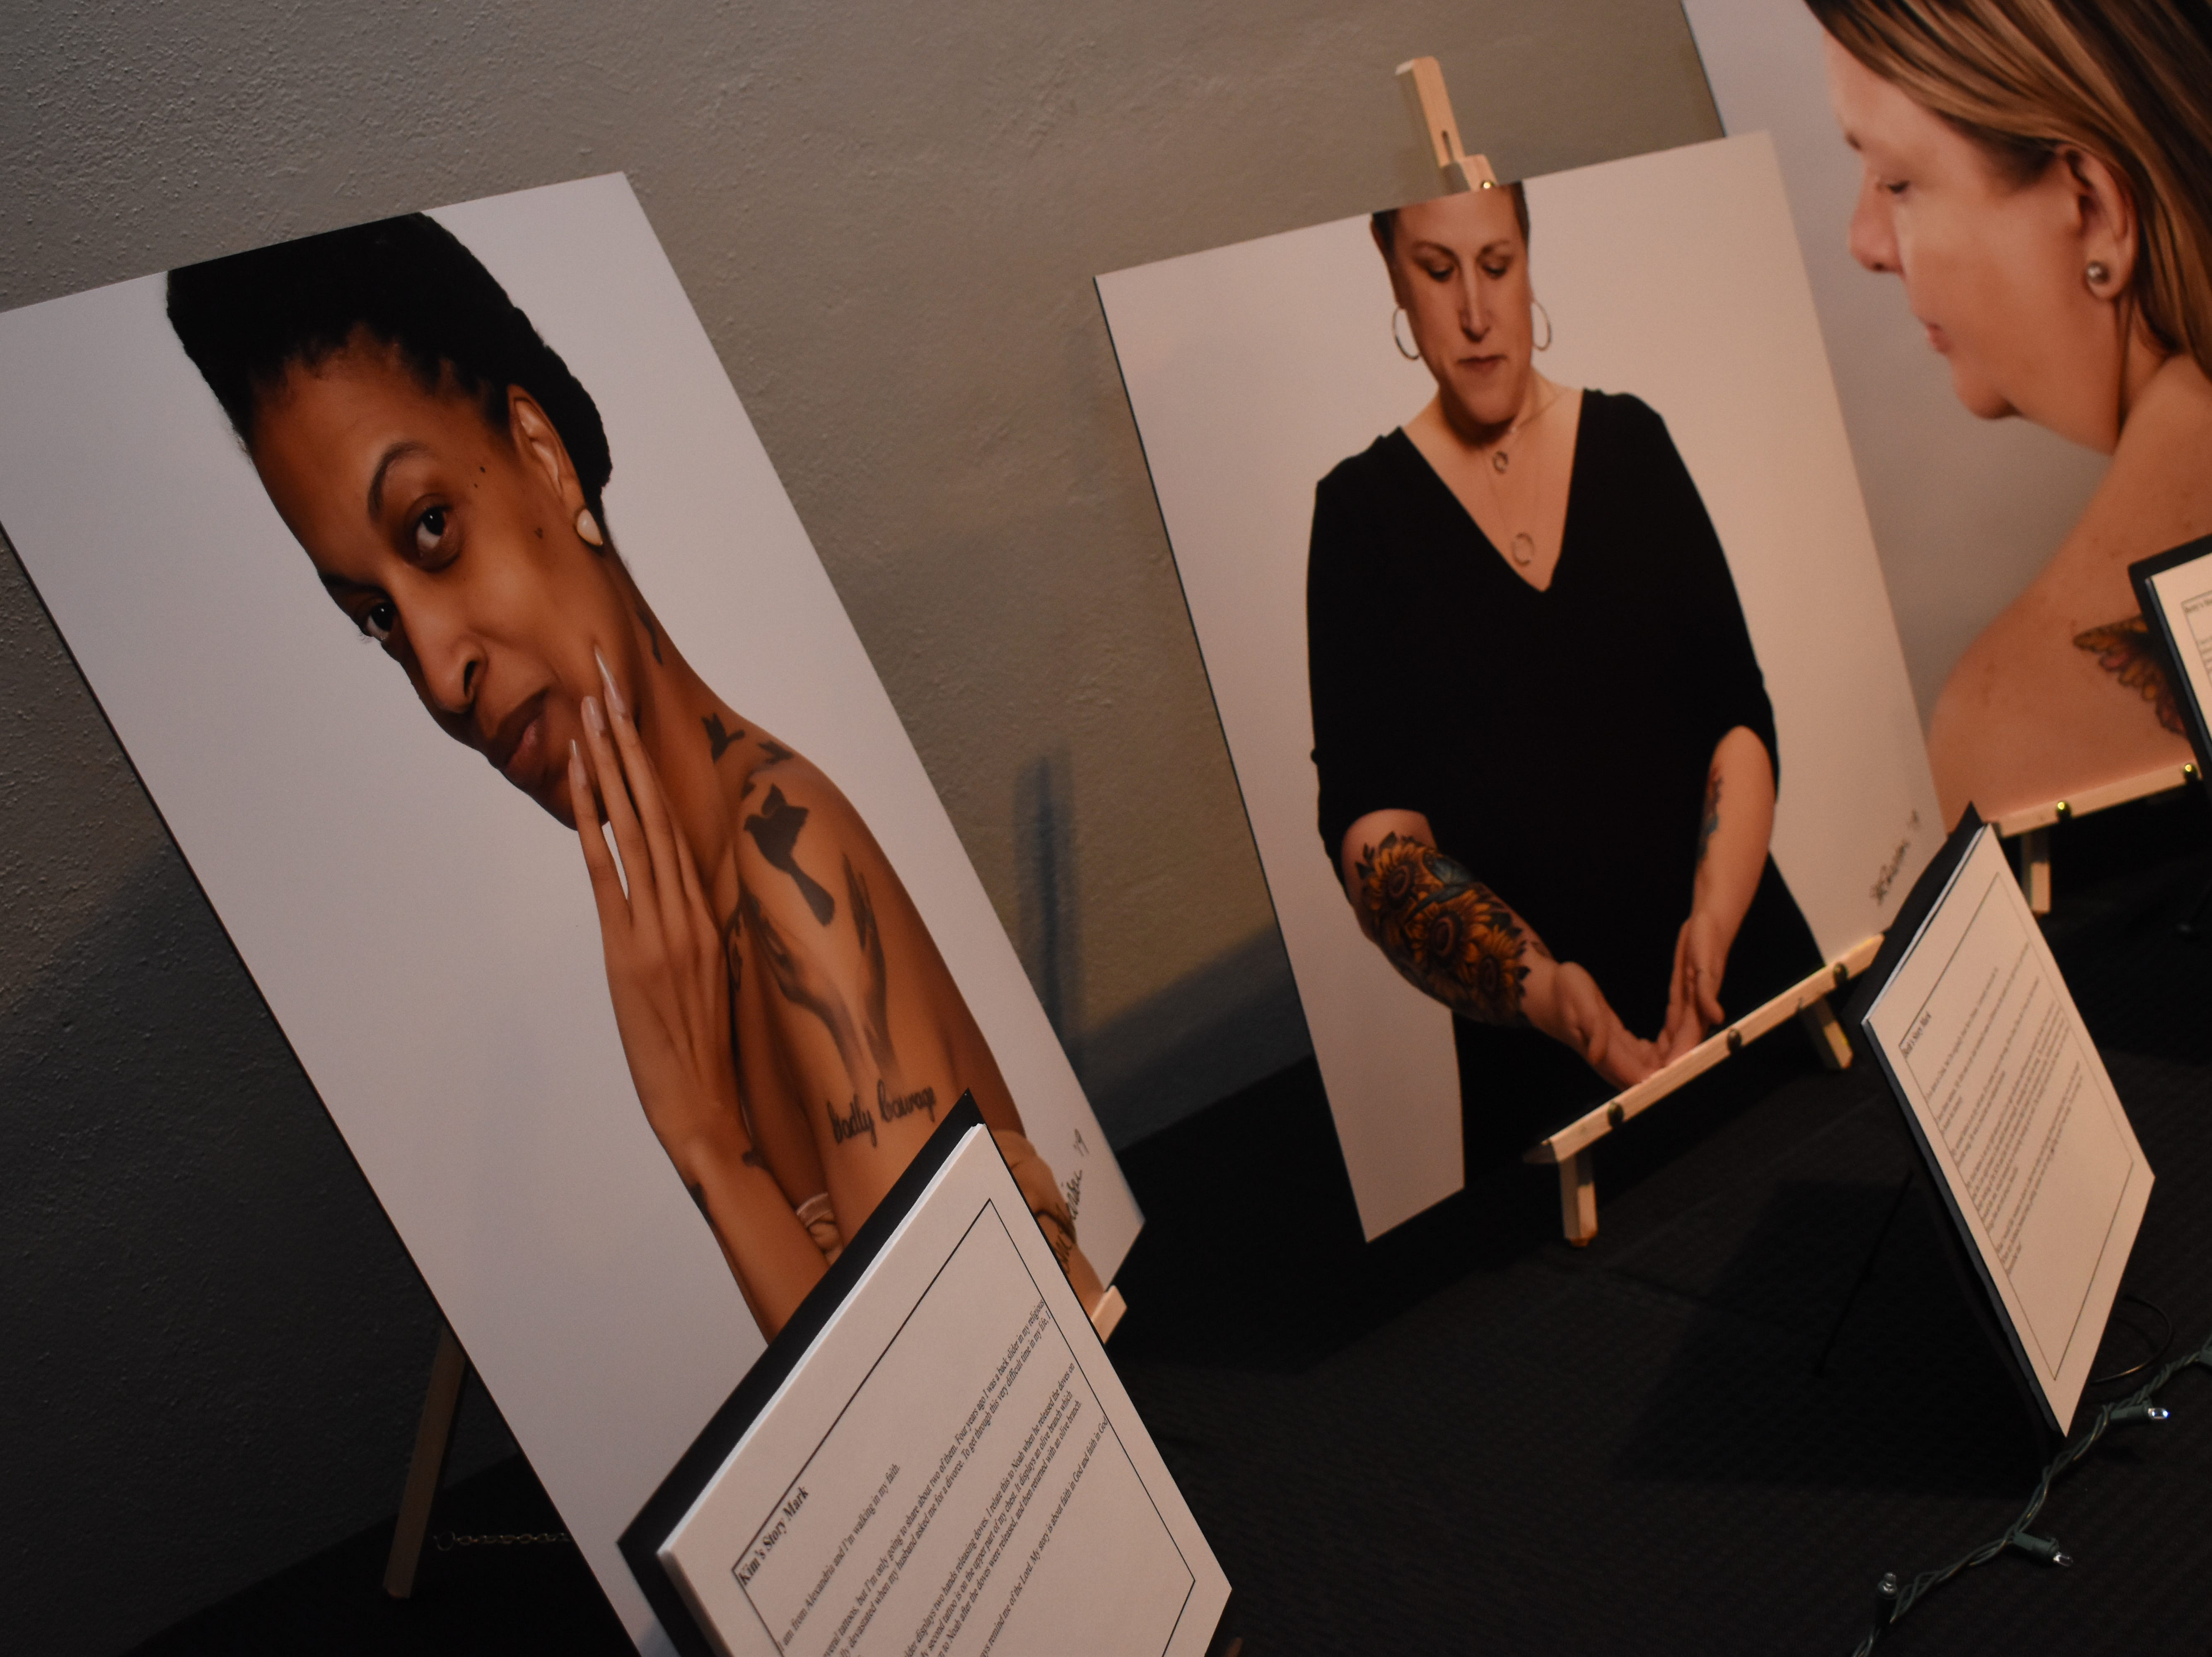 """""""Story Marks,"""" an event highlighting women who have tattoos and the stories behind them was held Friday, Feb. 1, 2019 at Willowbench Meeting Place in Pineville.""""We've recruited 18 women and their stories behind their tattoos,"""" said Belle Chatelain, one of the event organizers. Chatelain said Story Marks is a division of Stonecroft, a non-profit ministry. """"These are events that have been around the nation for the last - probably three years,"""" explained Chatelain. """"They've been  in about 30 states. And we're the first to bring one to Louisiana.""""The women and their tattoos were photographed by local photographer Susan Merritt Stevison. The photographs of the women, the tattoos and their stories were on display.""""We've been planning this for months,"""" said Chatelain. The event is about building community, crossing cultural, religious denominations, socioeconomic differences and boundaries, she explained.""""To bring women together because we are a community of women and our message is that your story matters,"""" she added. """"That every woman has a story. We come together and share our stories we'll see how much we have in common versus how much that we're different.""""The event emcee, Wendi Bryant, is leading a community group call Themes at the Rapides Parish Library on Wednesday nights for four weeks to teach women how to write their life story.Molly Townsend dcoumented Friday's event. Tammie Thames, owner of Willowbench, donated the meeting space for the event."""